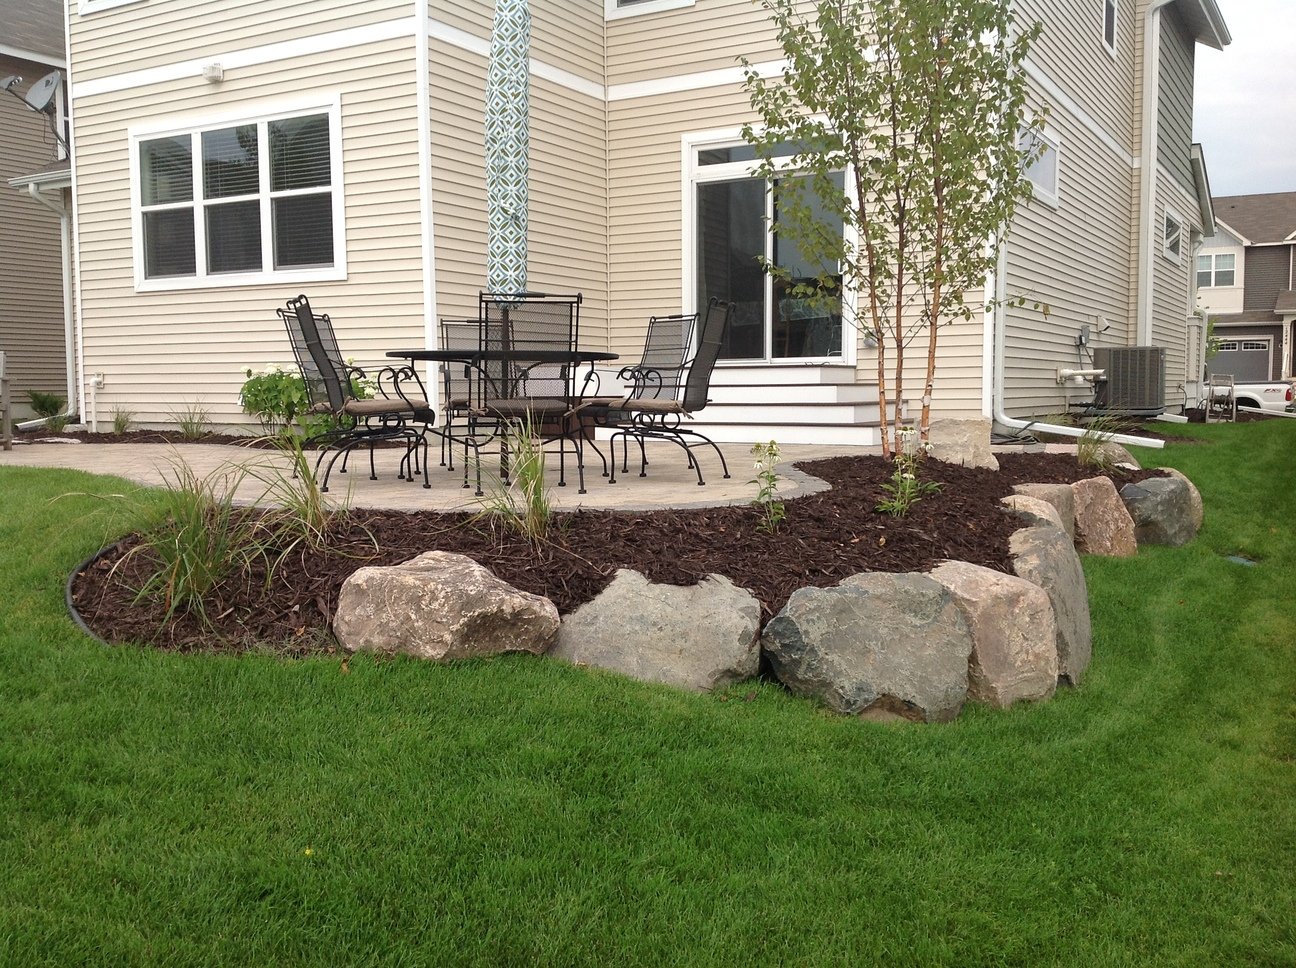 olympus digital camera - Patio And Landscape Design